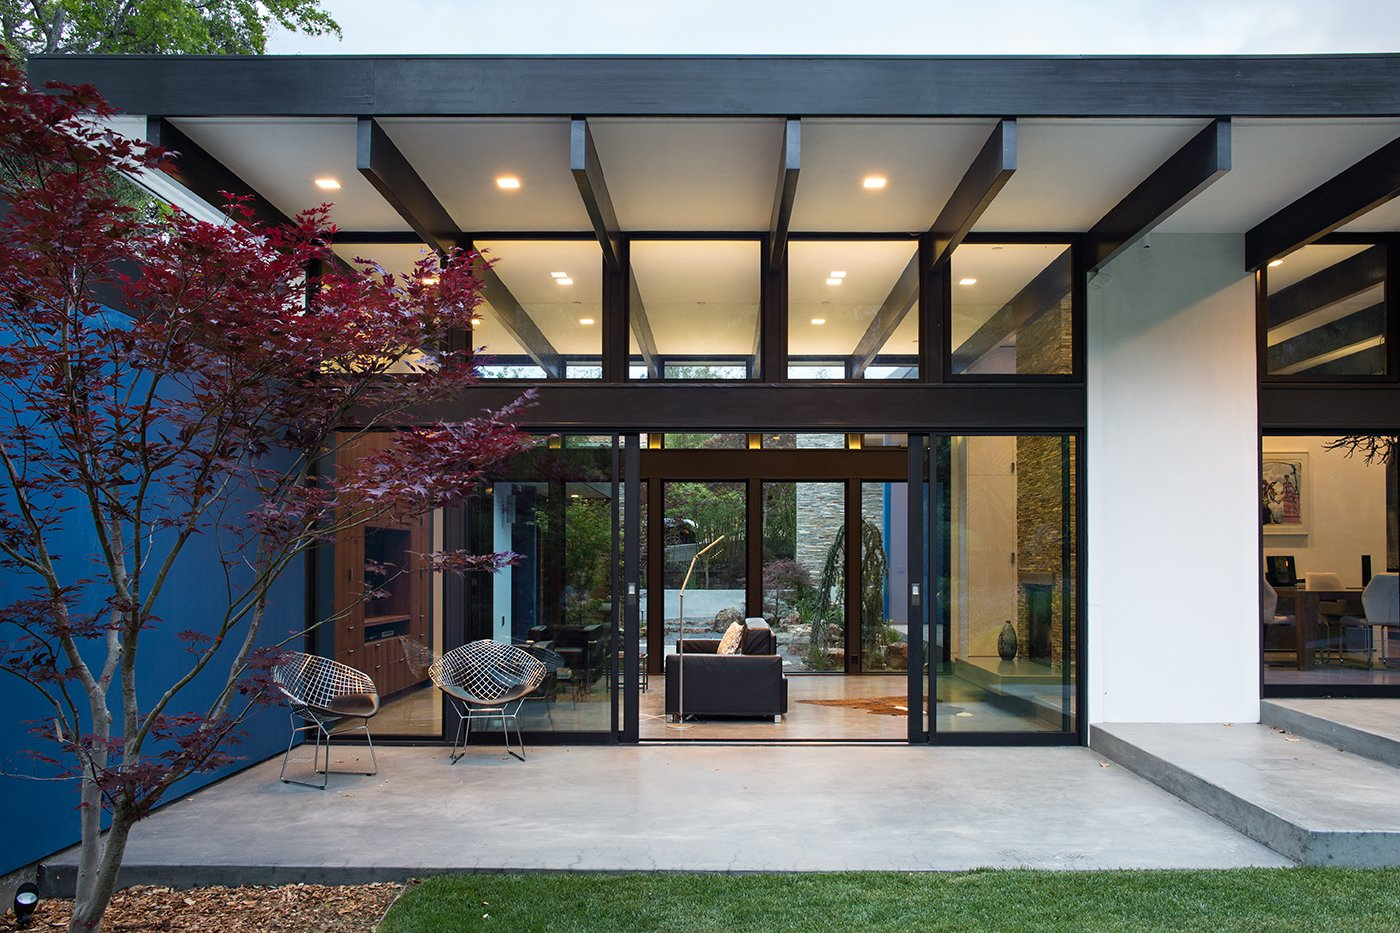 Modern Atrium House  The owners, inspired by mid-century modern architecture, hired Klopf Architecture to design an Eichler-inspired 21st-Century, energy efficient new home that would replace a dilapidated 1940s home. The home follows the gentle slope of the hillside while the overarching post-and-beam roof above provides an unchanging datum line. The changing moods of nature animate the house because of views through large glass walls at nearly every vantage point. Every square foot of the house remains close to the ground creating and adding to the sense of connection with nature. Tagged: Exterior, Mid-Century Building Type, and House.  Klopf Architecture by Klopf Architecture